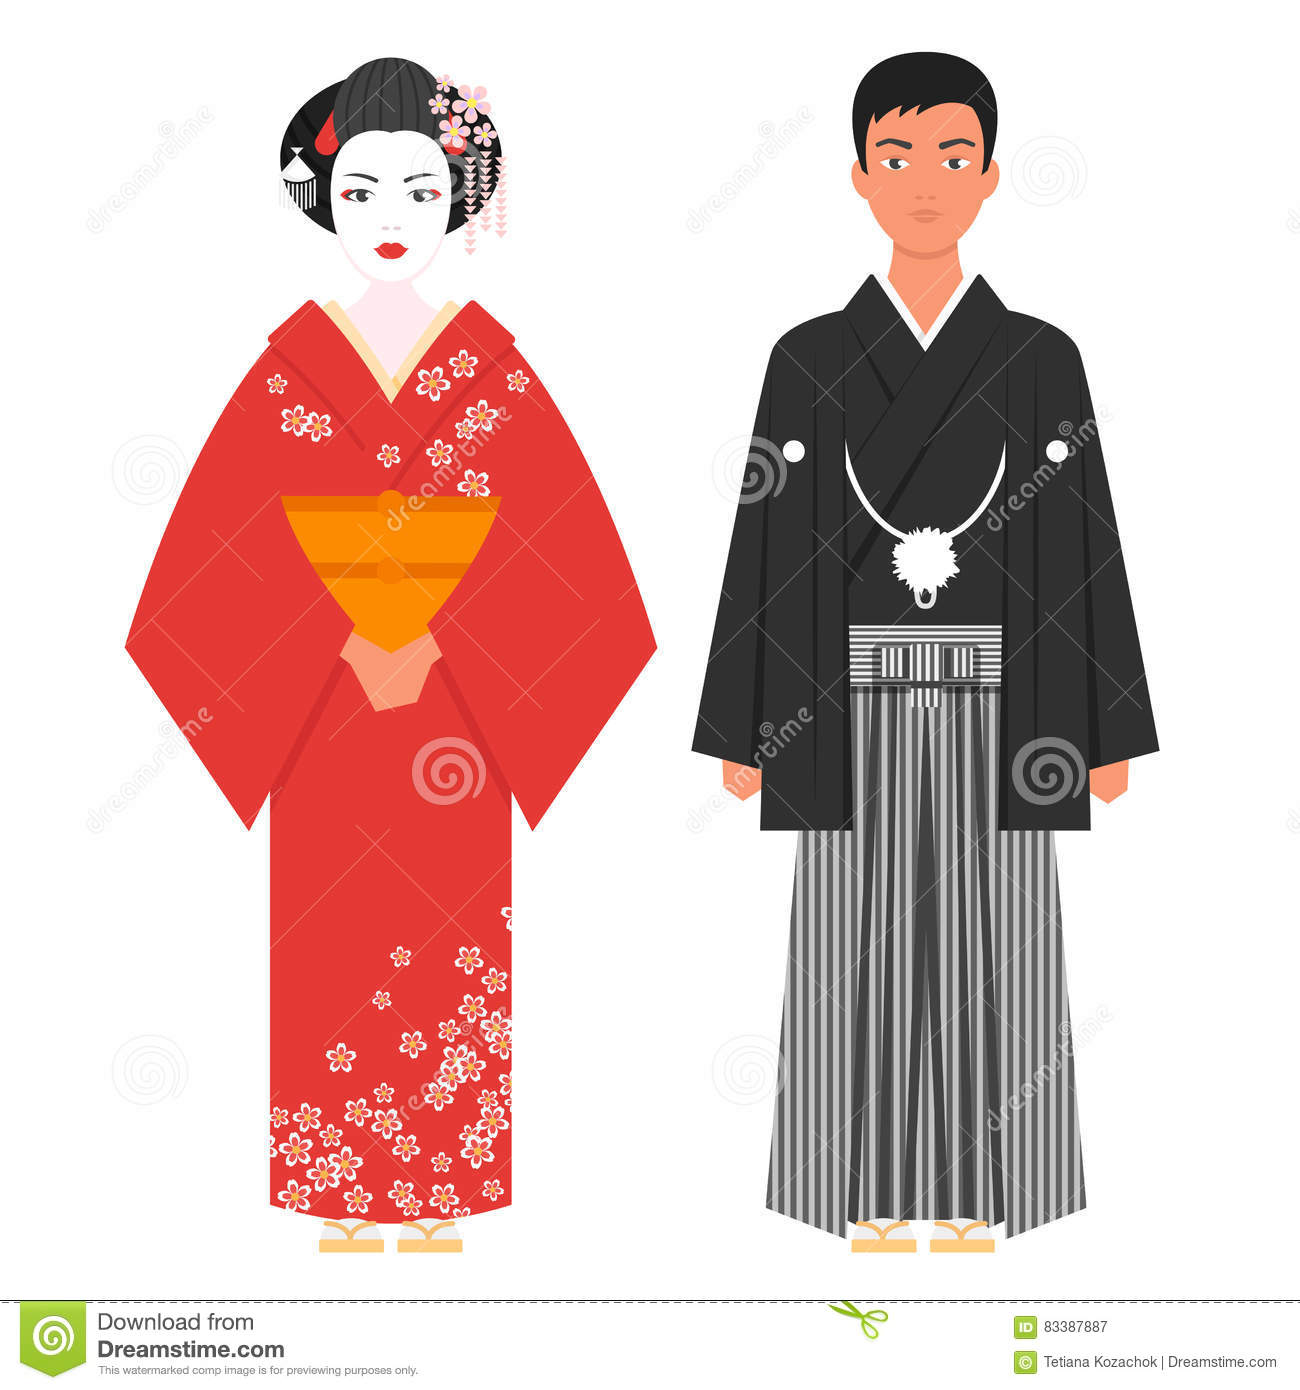 Vector flat style illustration of japanese traditional clothing stock vector illustration of Japanese fashion style icon